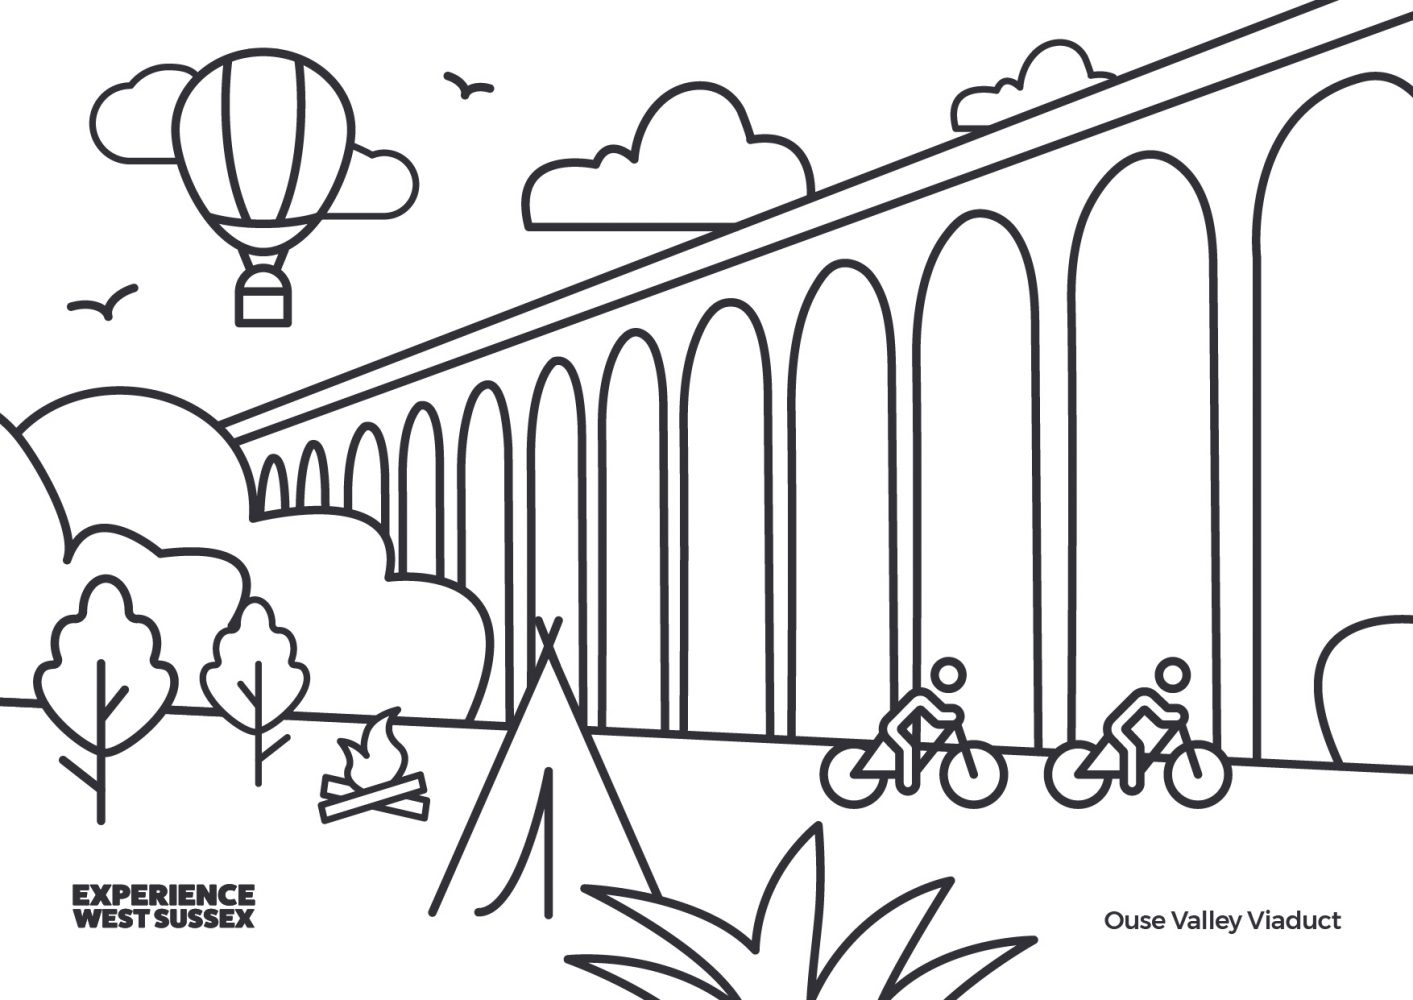 Ouse Valley Viaduct colouring sheet